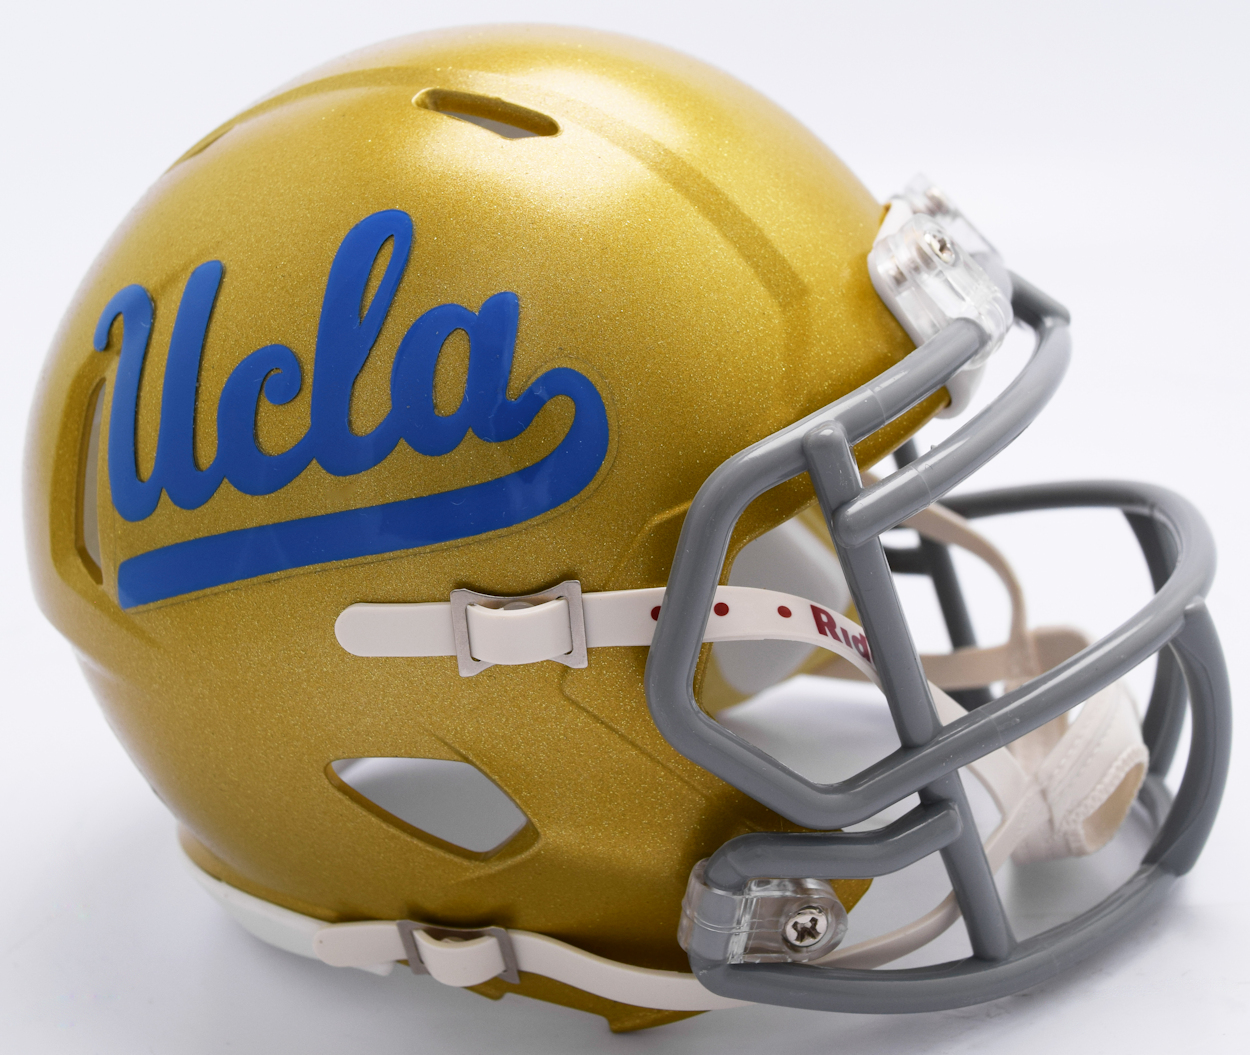 UCLA Bruins NCAA Mini Speed Football Helmet <B>NEW 2017</B>